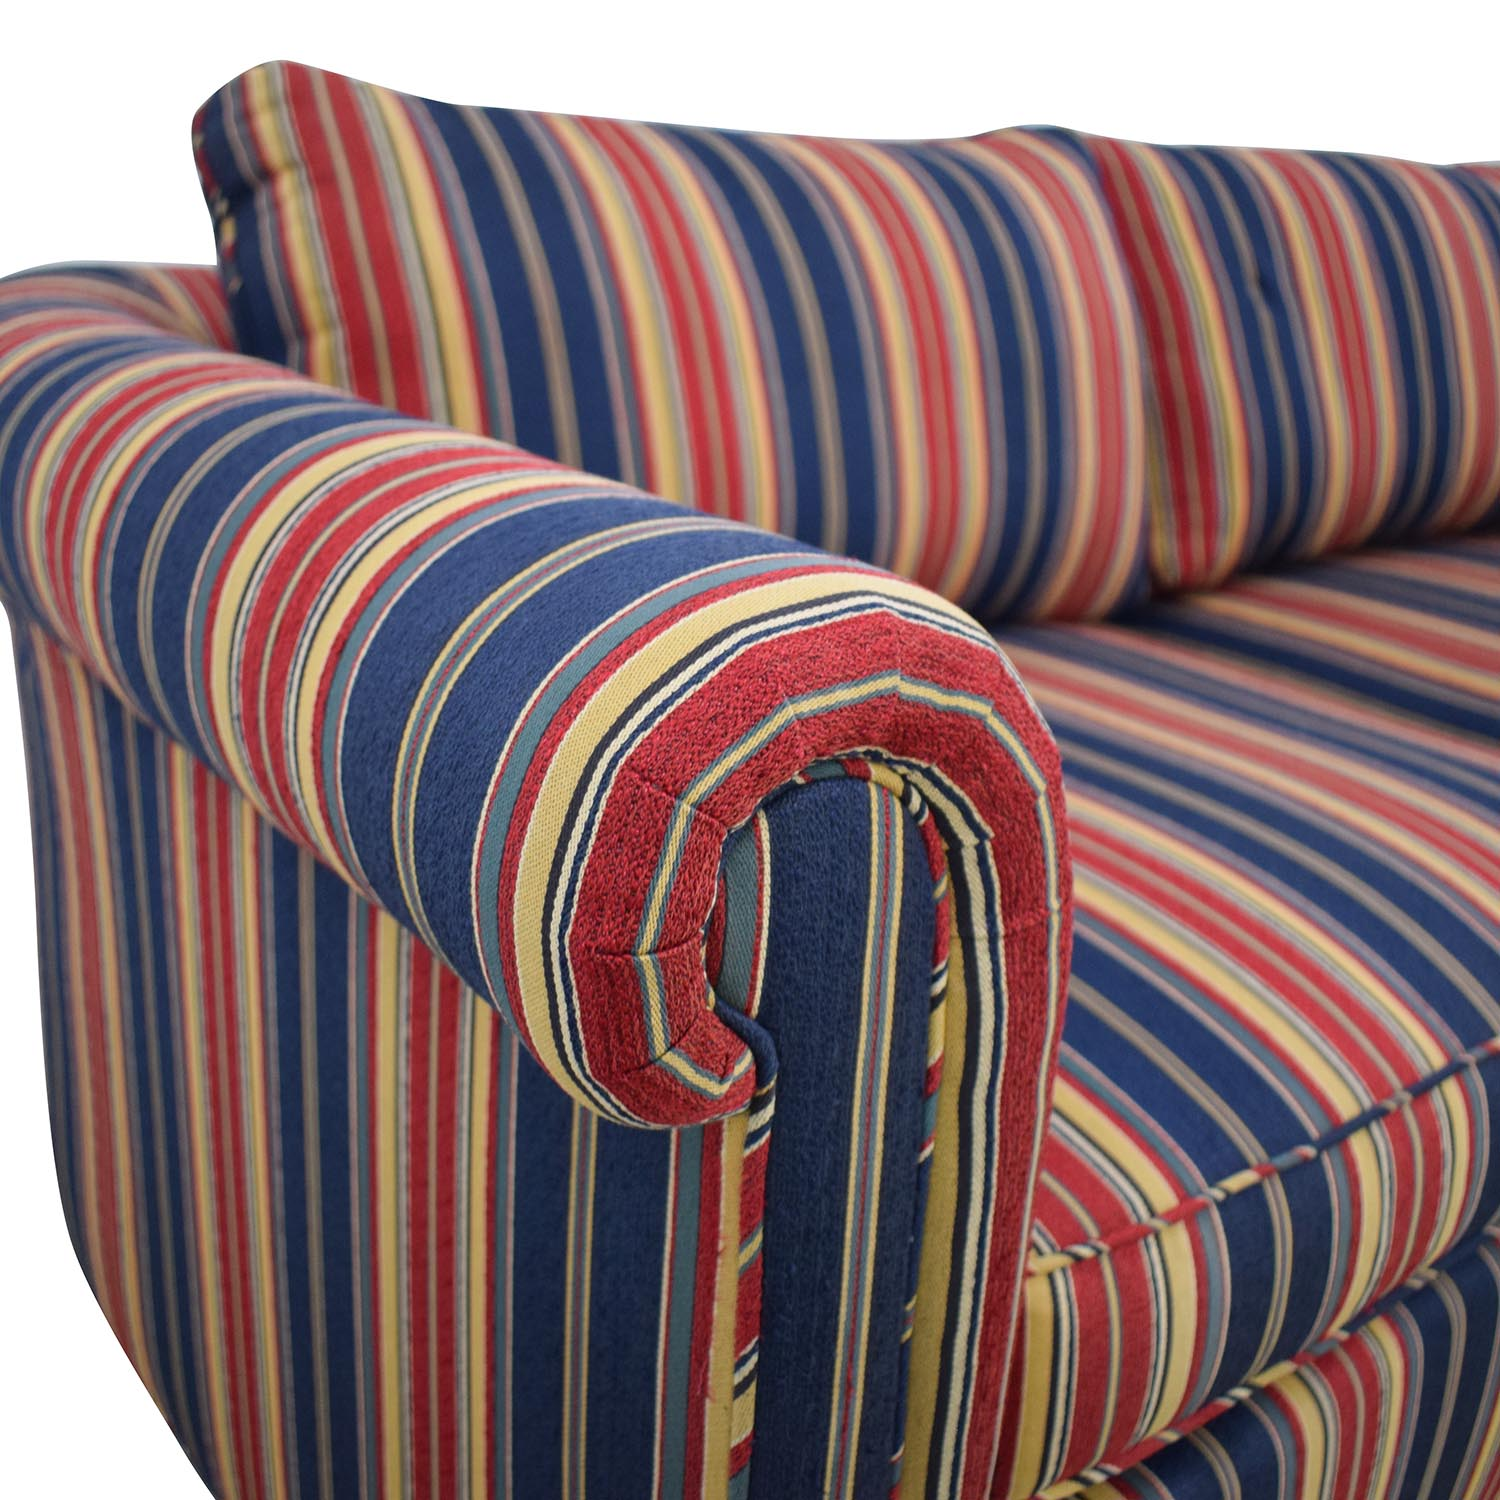 Striped Two Cushion Loveseat dimensions